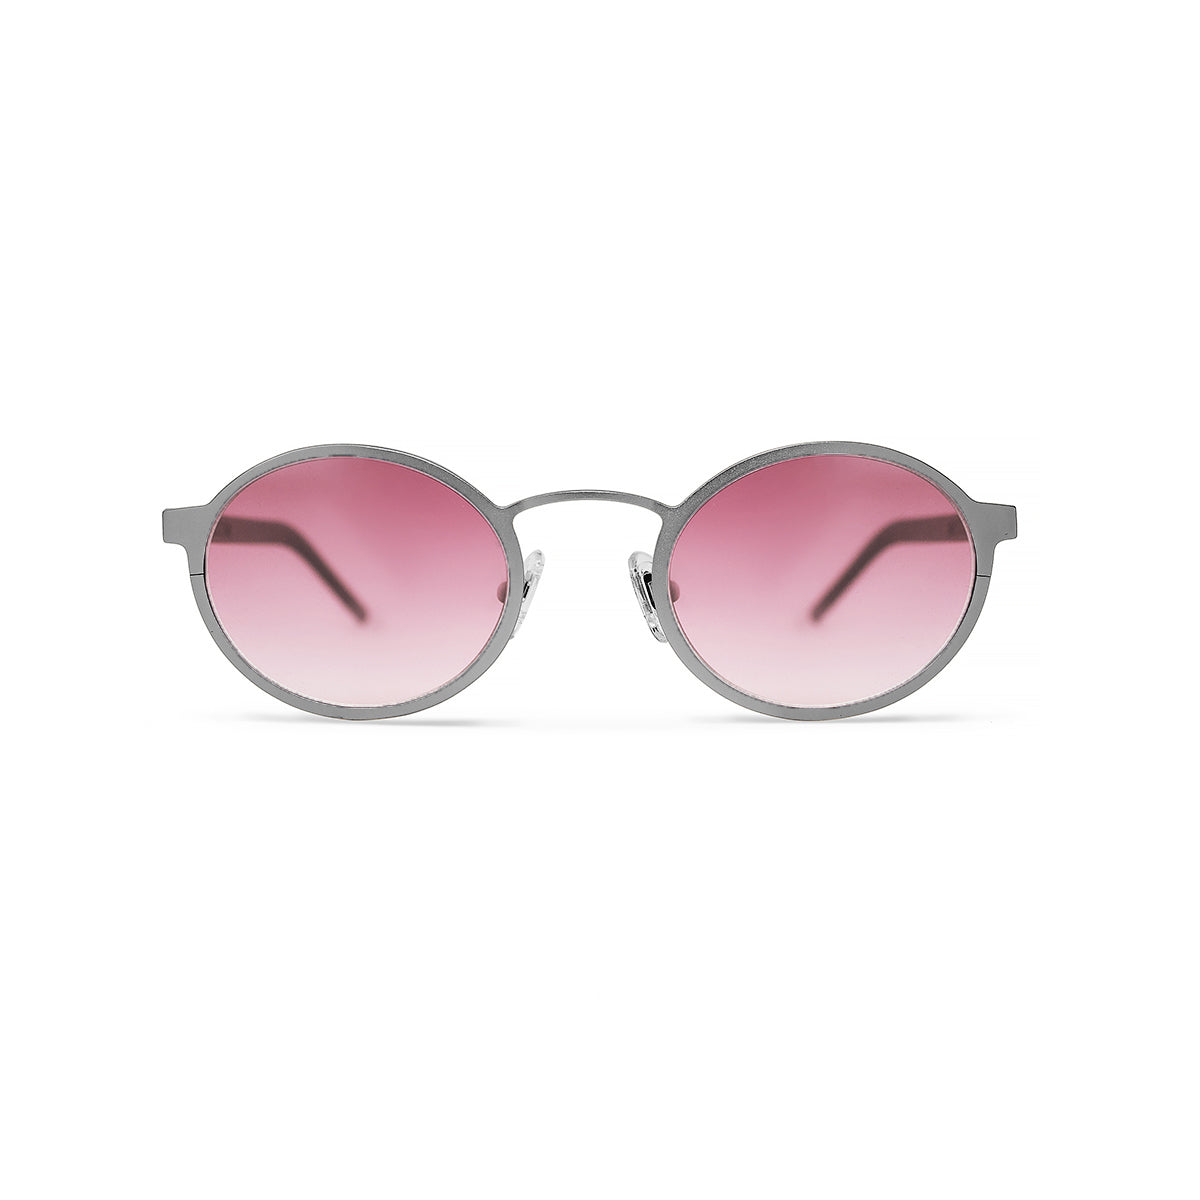 Metal. Brushed Silver. Blush Lens. - BLYSZAK eyewear eyewear - eyewear, optical, sunglasses